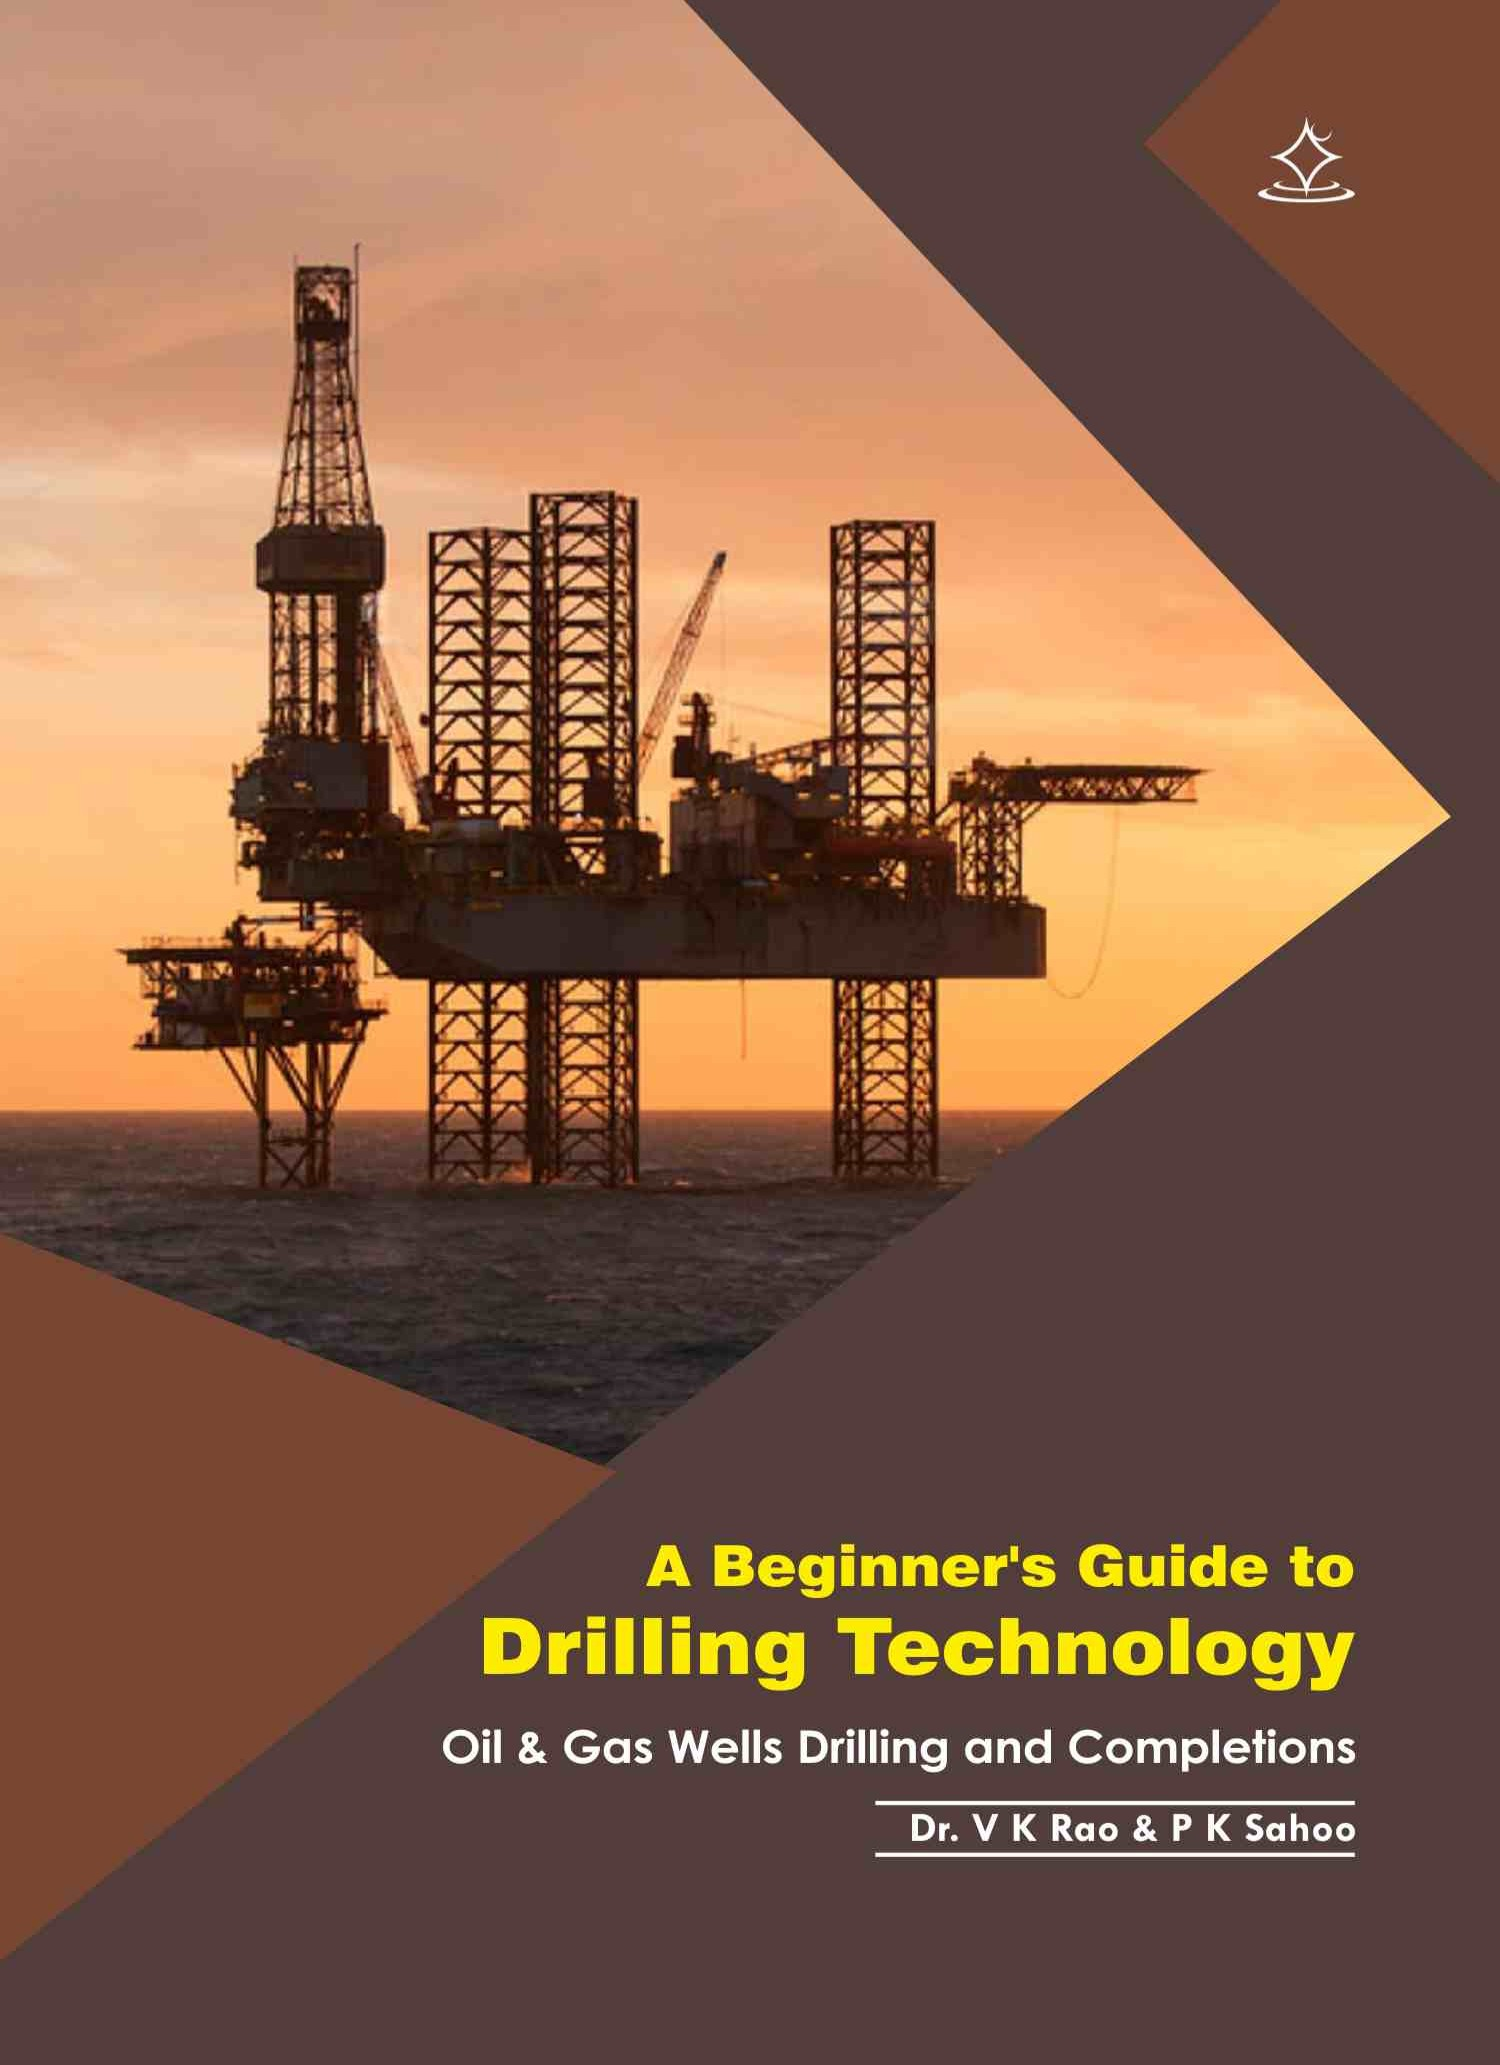 A Beginner's Guide to Drilling Technology